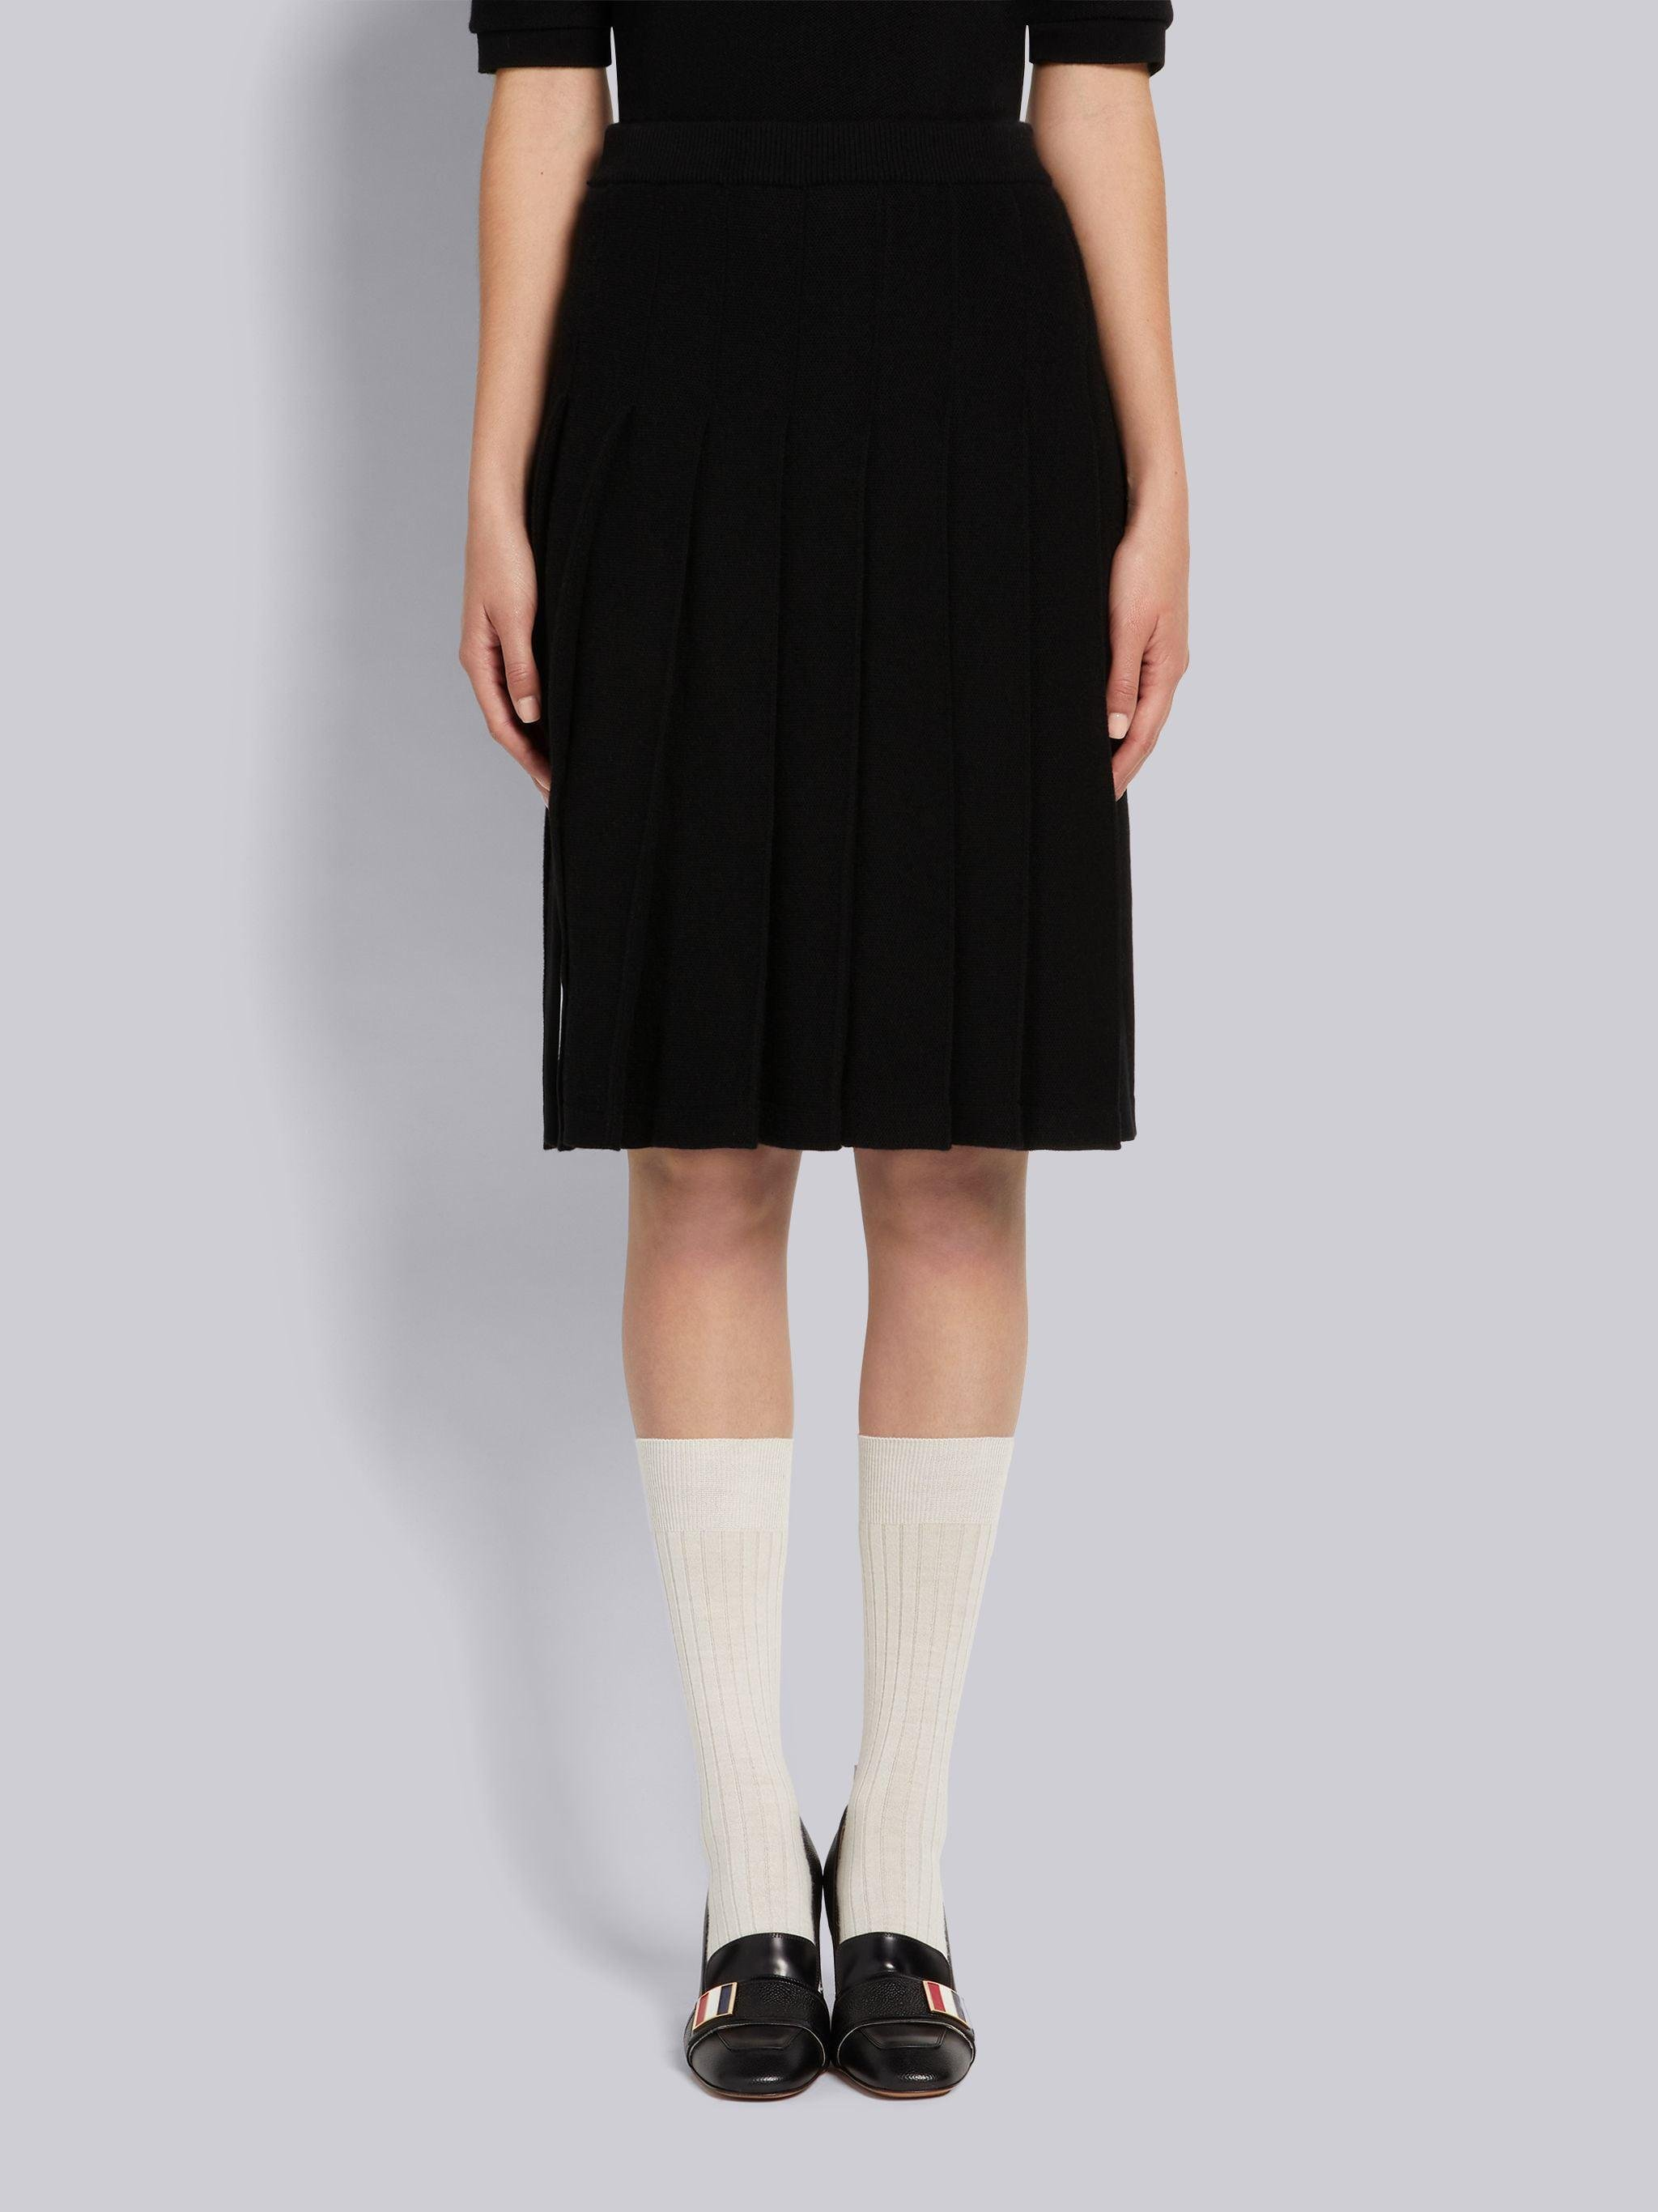 Black Cashmere Pique Below-the-Knee Pleated Skirt